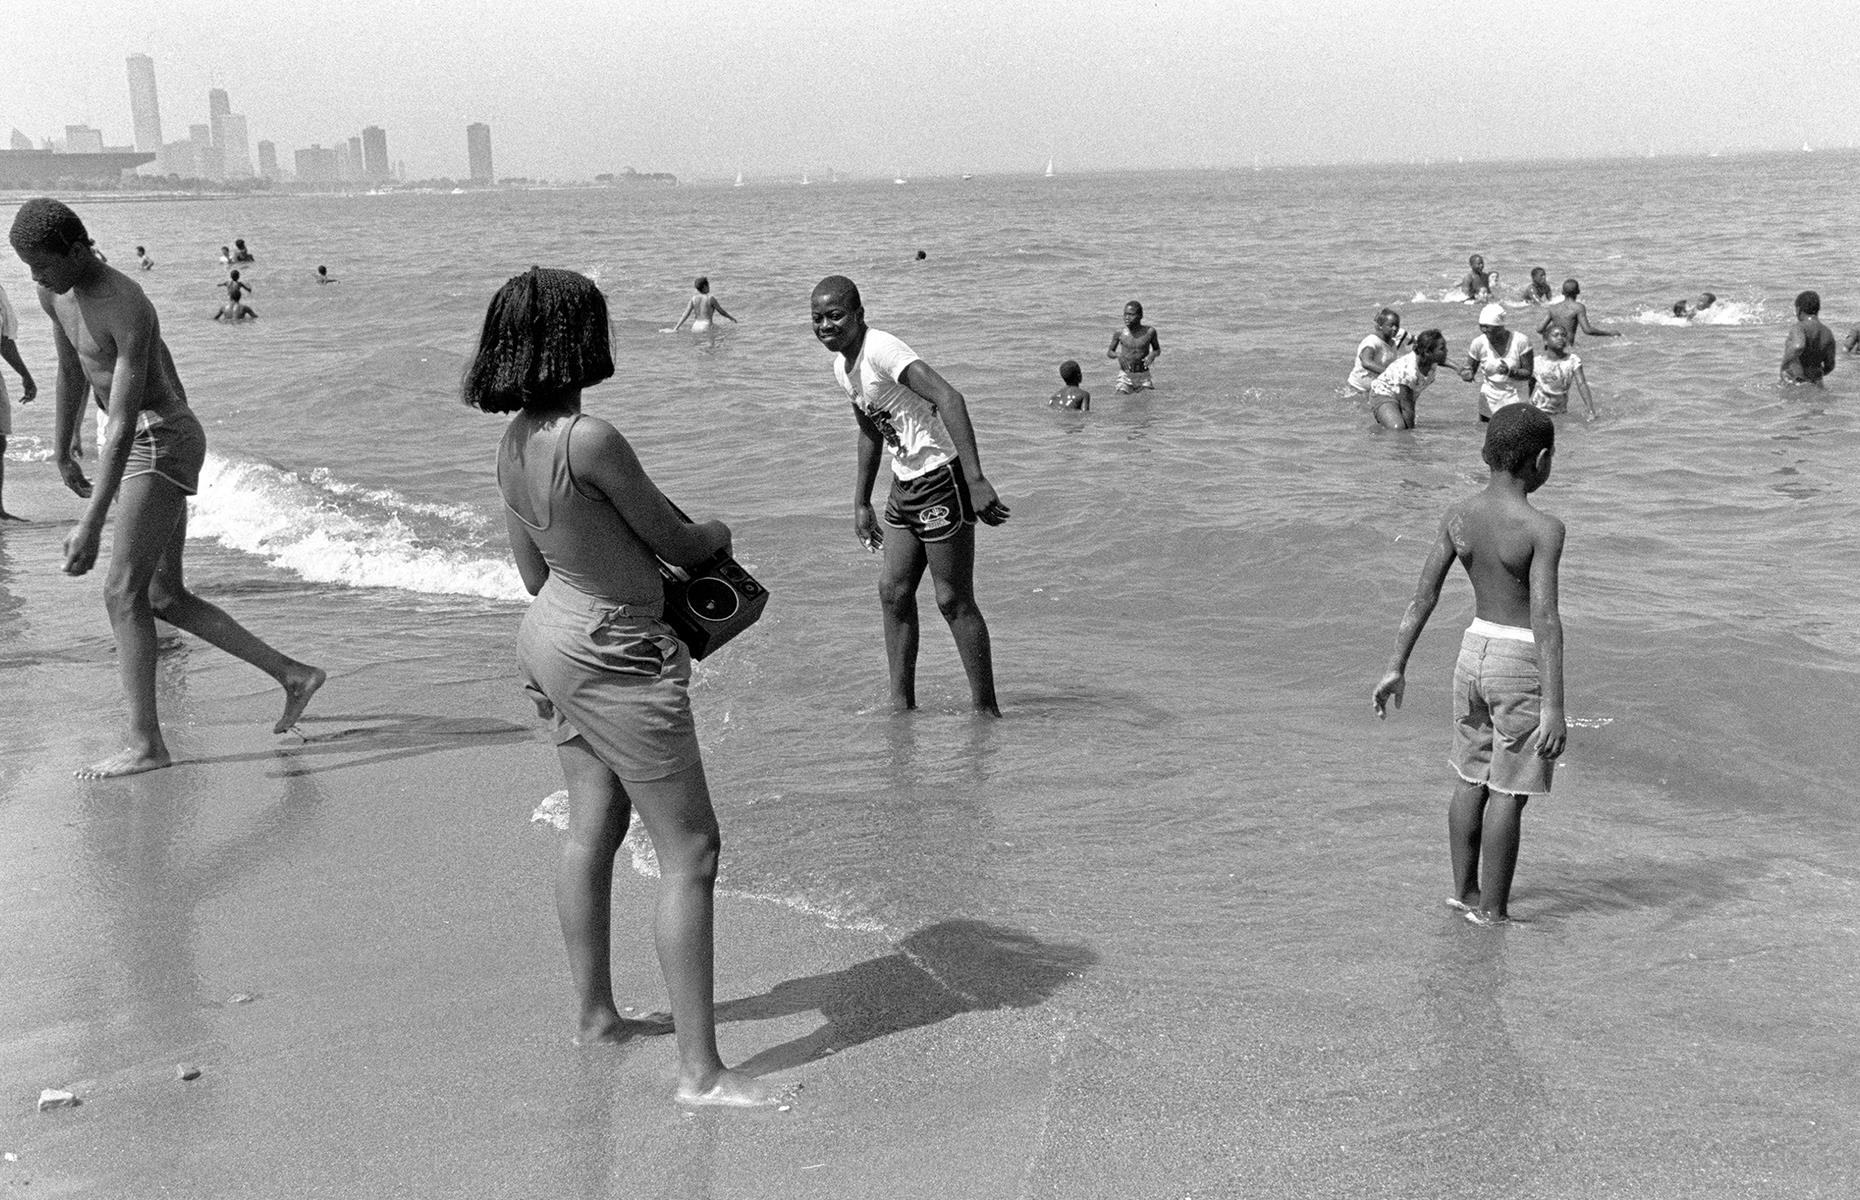 "Slide 30 of 38: It's not all about the seaside, though – America's Great Lakes have long been a vacation spot for beach bums too. In this 1987 snap, sun-seekers splash in Lake Michigan at Chicago's Margaret T. Burroughs Beach (formerly 31st Beach). Now a diverse city strand, this beach was once segregated and designated for black visitors. And in contrast to the peaceful scenes shown here, a black teenager named Eugene Williams was killed in these waters, when he unknowingly drifted into a ""white zone"", triggering the Chicago race riot of 1919. A memorial for Williams is held on the beach each year."